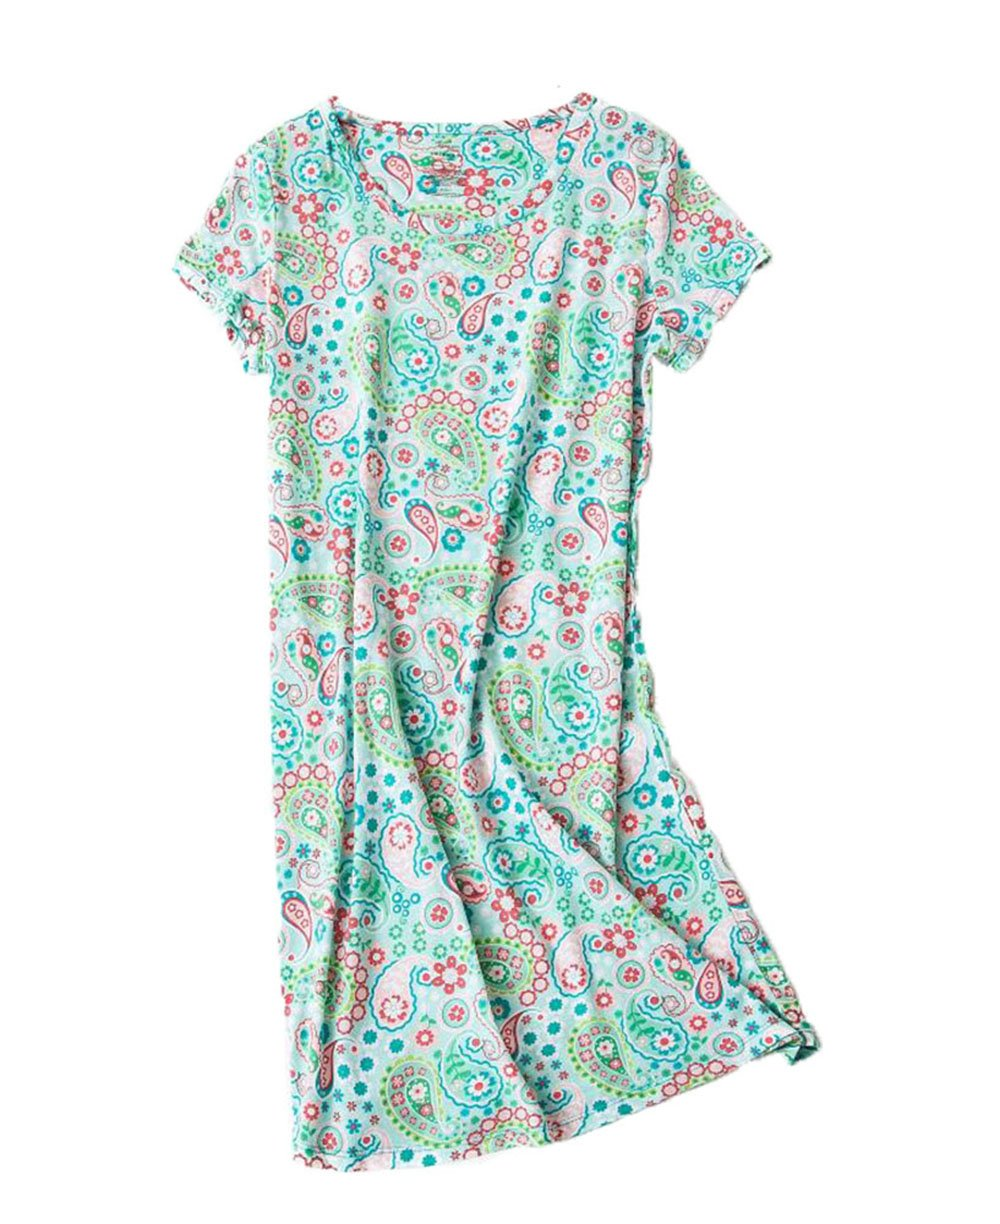 Amoy-Baby Women's Cotton Green Flower Floral Nightgown Casual Nights 2XL XTSY001 by Amoy-Baby (Image #1)